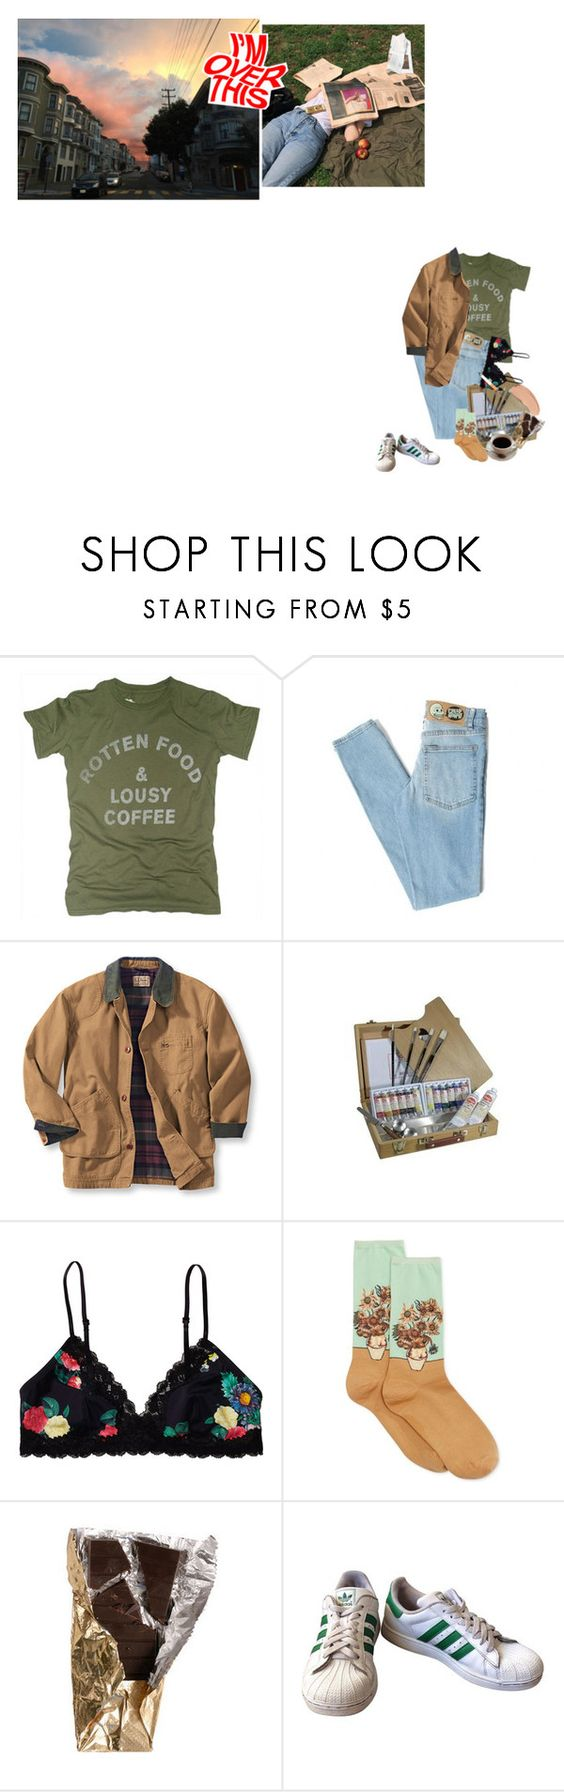 """coffee should fix that!"" by foolish-luna ❤ liked on Polyvore featuring Worn Free, Cheap Monday, Monki, Forum, HOT SOX, adidas, Yves Saint Laurent and vintage"